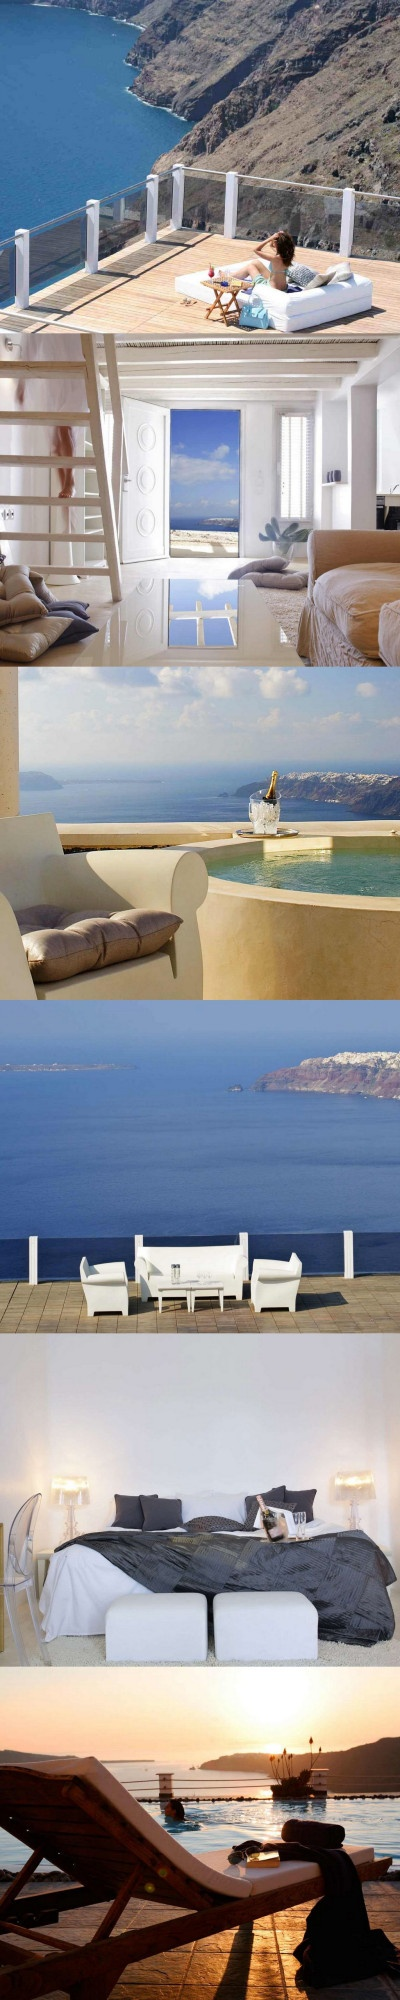 If you want a hotel with stunning views you should take a look at Santorini, Greece. This island offers marvelous views but no beaches as it is a volcanic island. It has been said that the sunsets in Santorini are the best in the world.